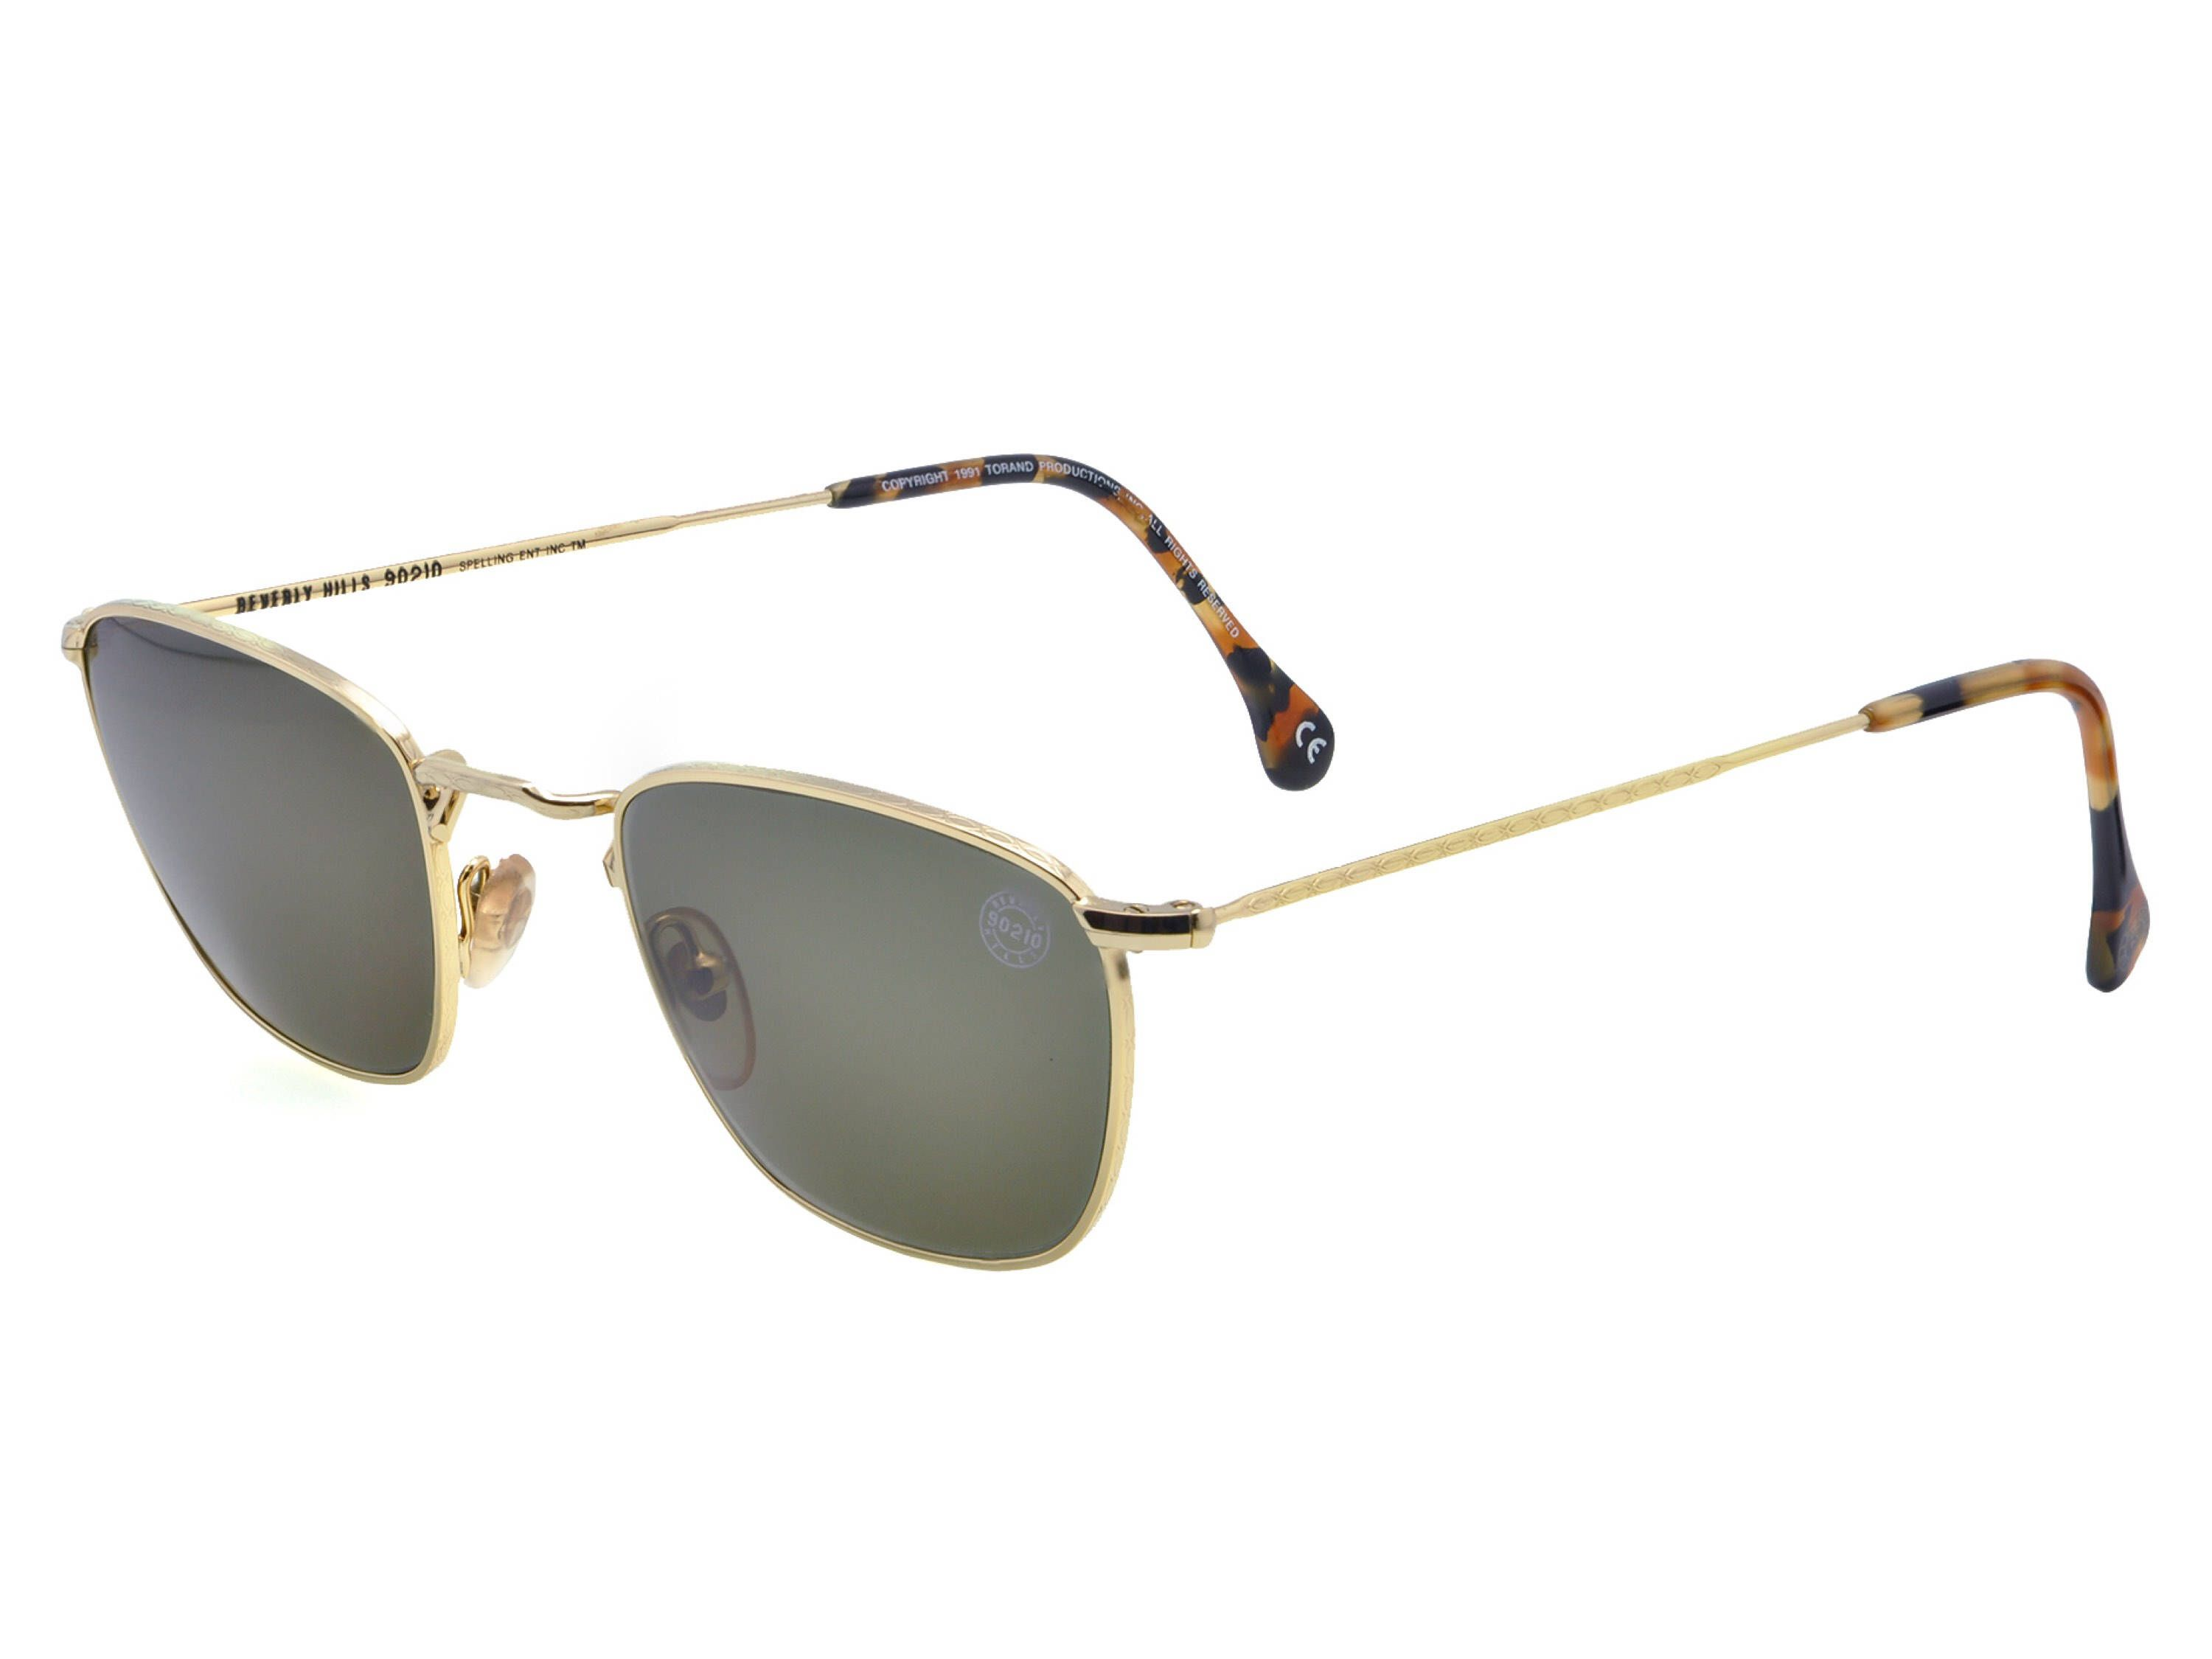 493179a36 90210 Steve Vintage Sunglasses 90s, made in USA. Gold vintage ...